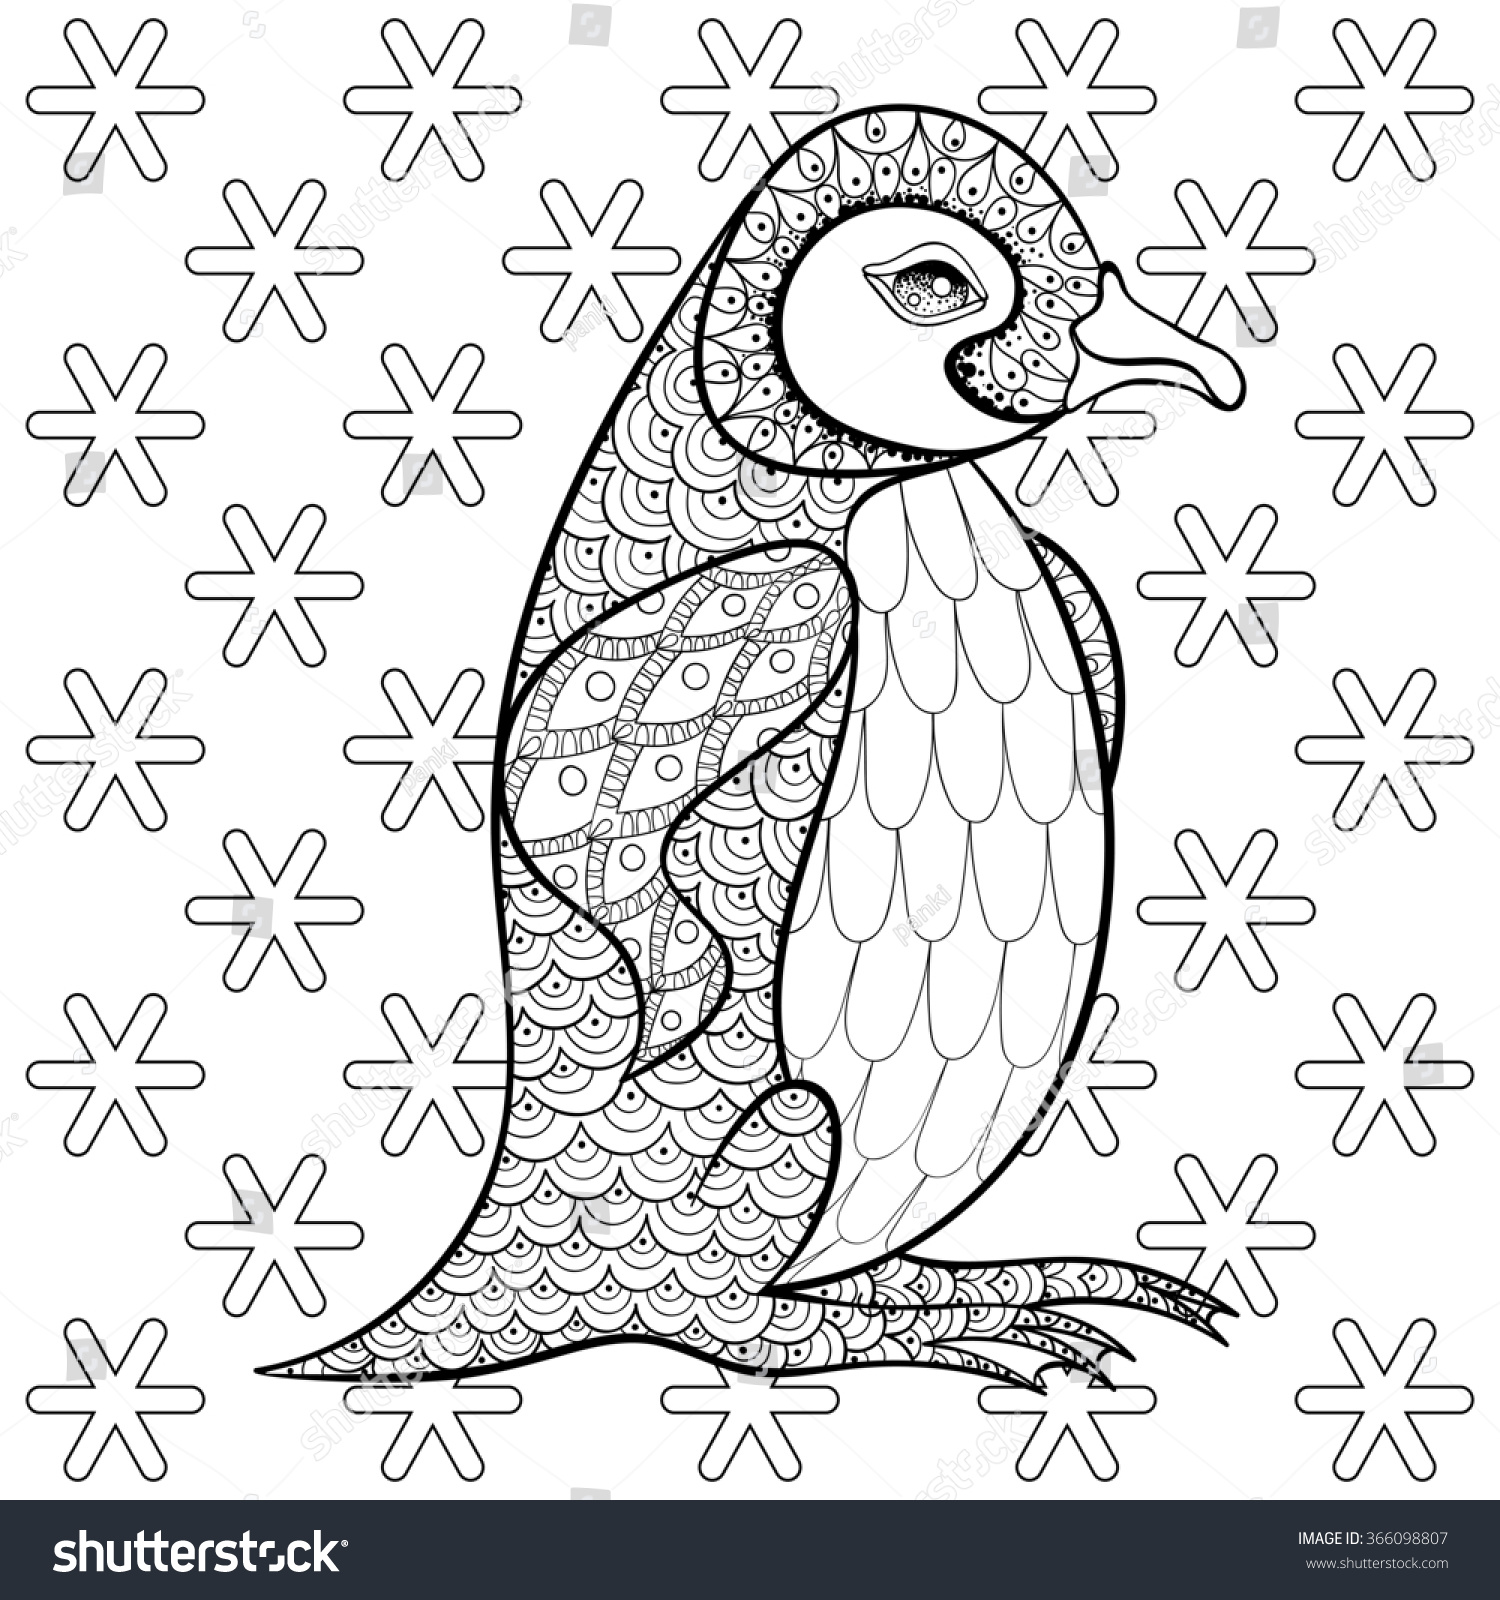 Royalty free coloring pages with king penguin among for Penguin adult coloring pages